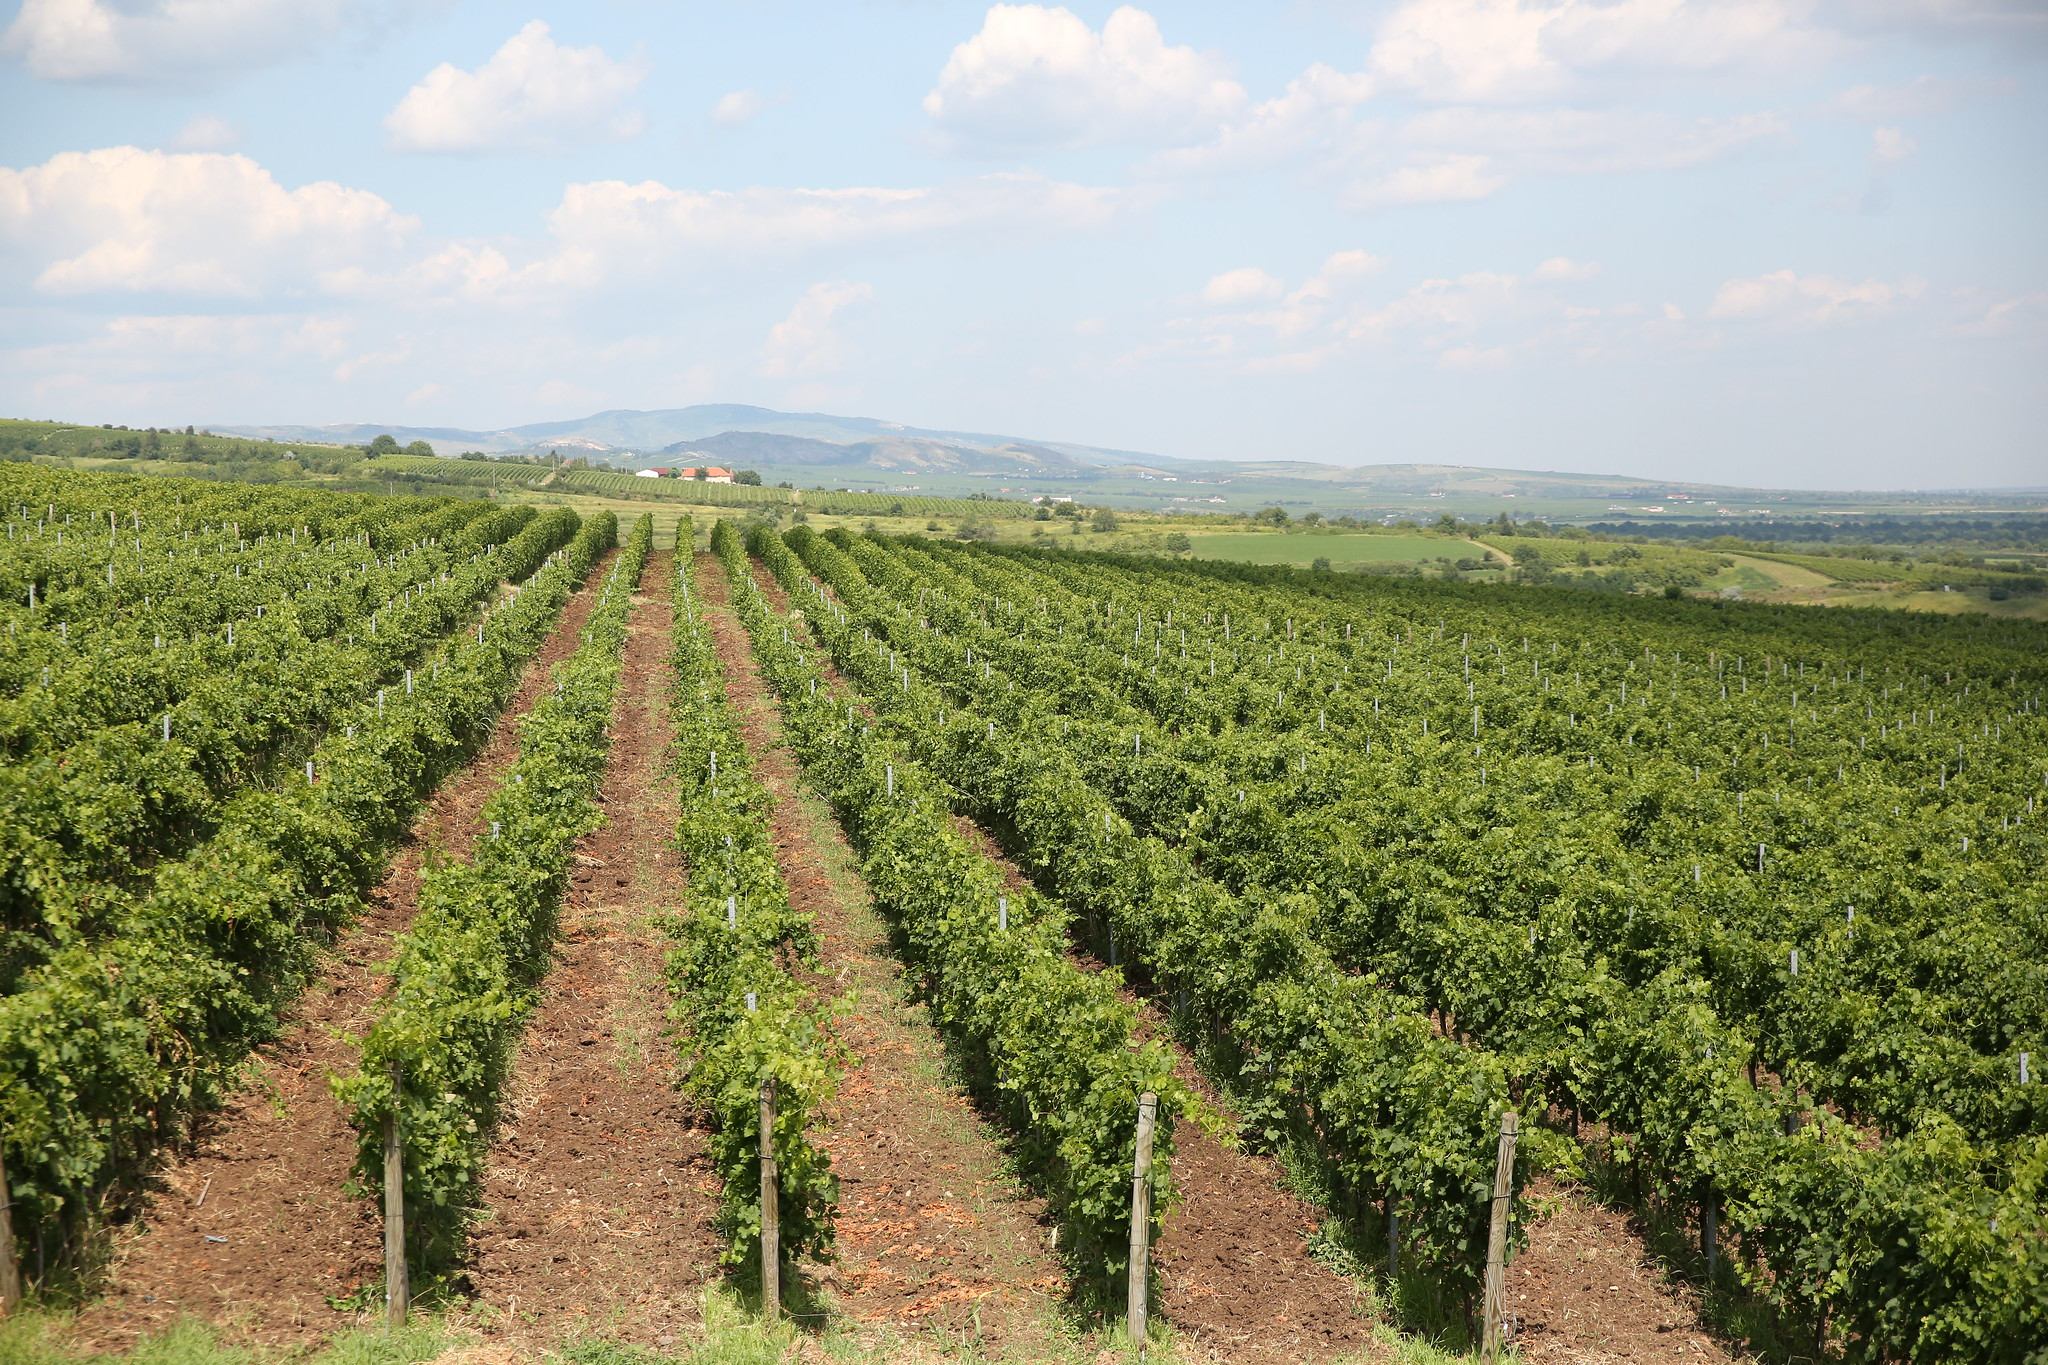 PRESS RELEASE1Geneva, l5 July 2019OIV REPORT ON THE WORLD VITIVINICULTURAL SITUATION